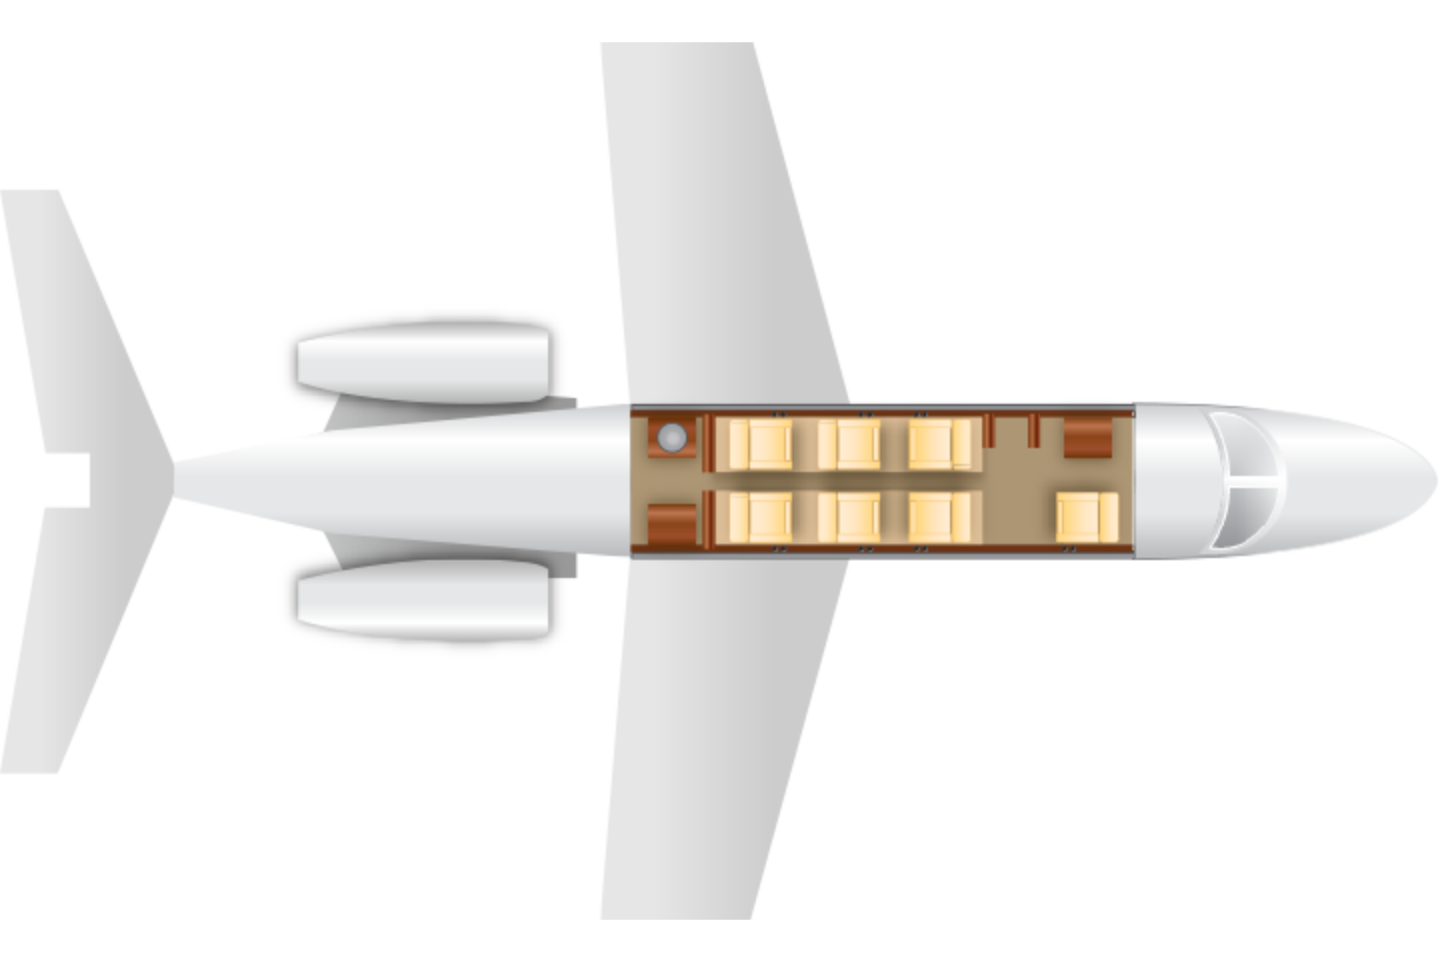 citation-ii-transparent-1412623419.png Floor Plan View